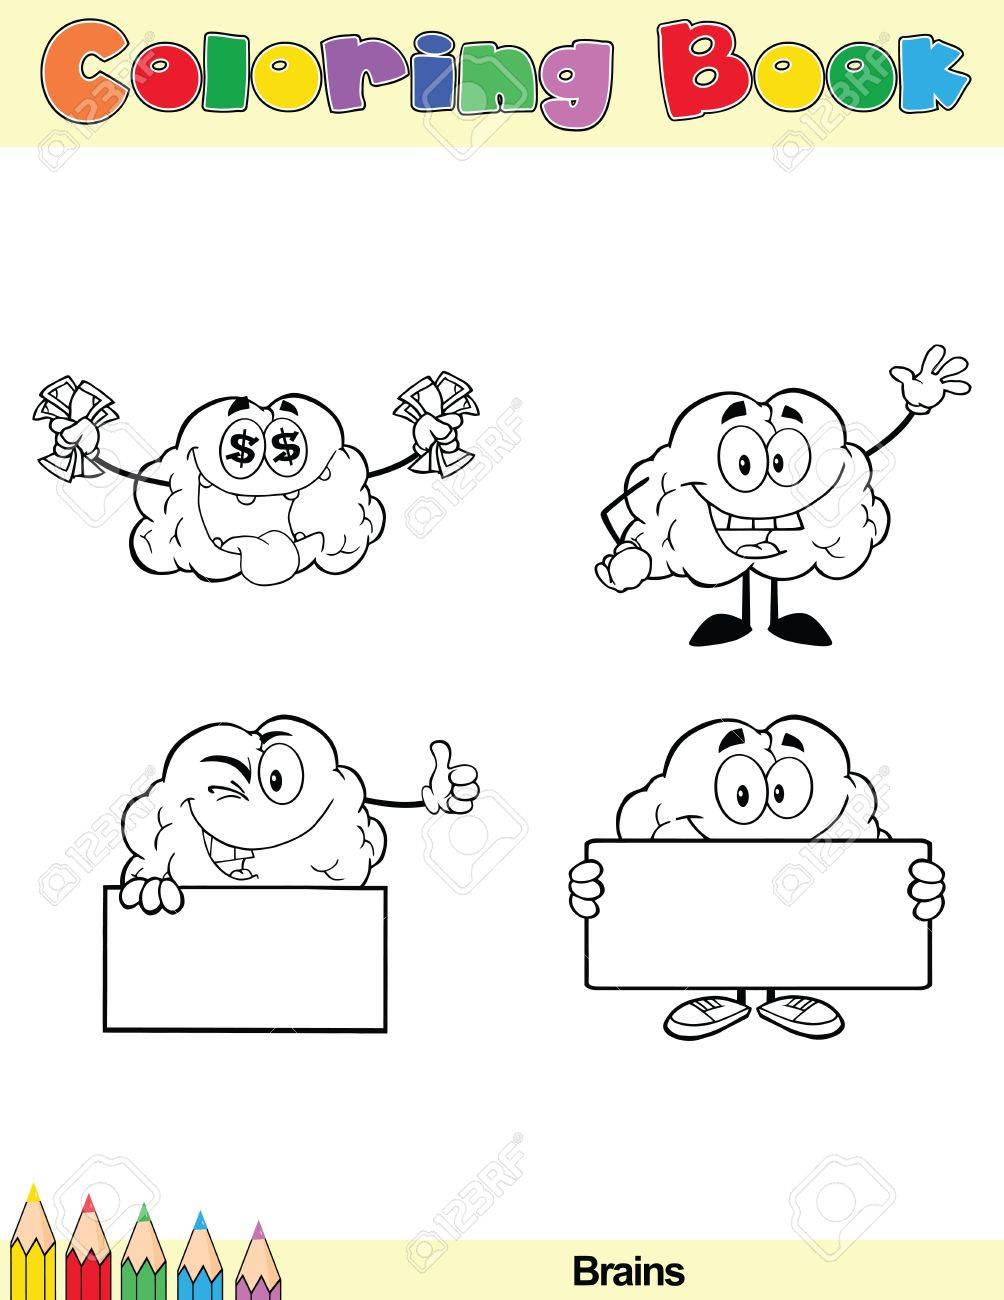 coloring book page brain cartoon character 5 stock vector 21311879 - Brain Coloring Book